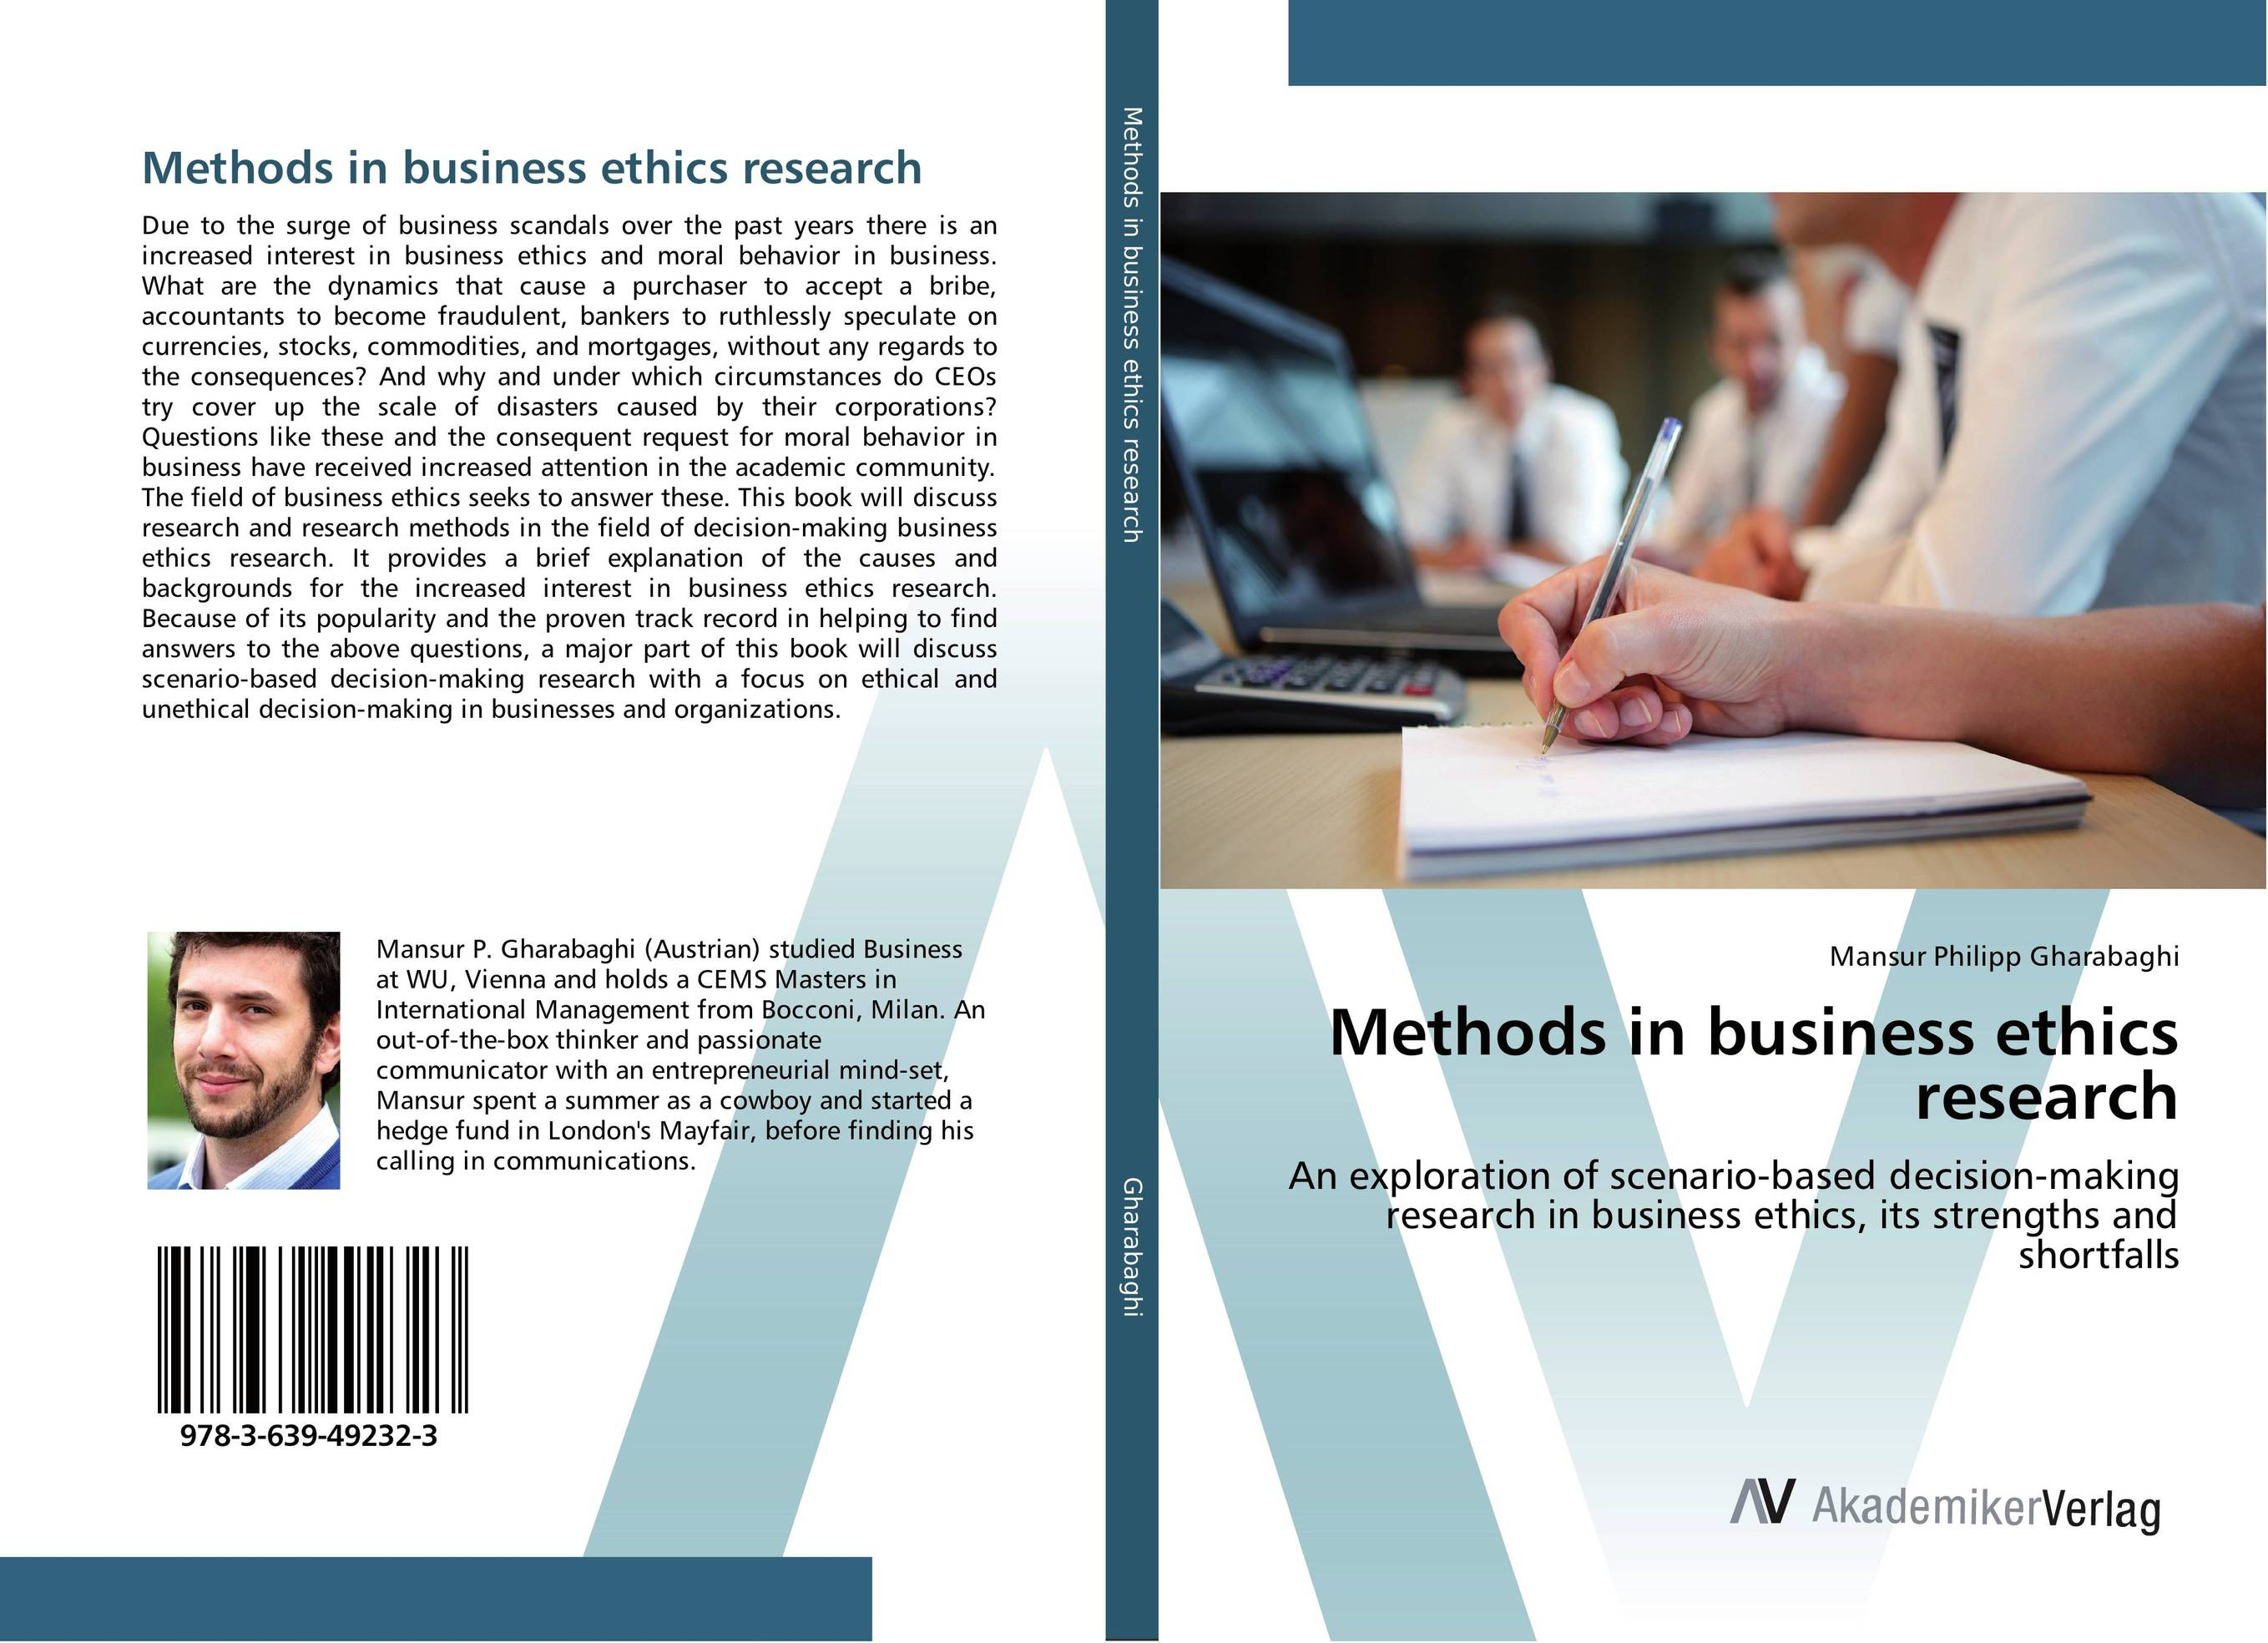 Methods in business ethics research benaissa lamroubal bielefeld